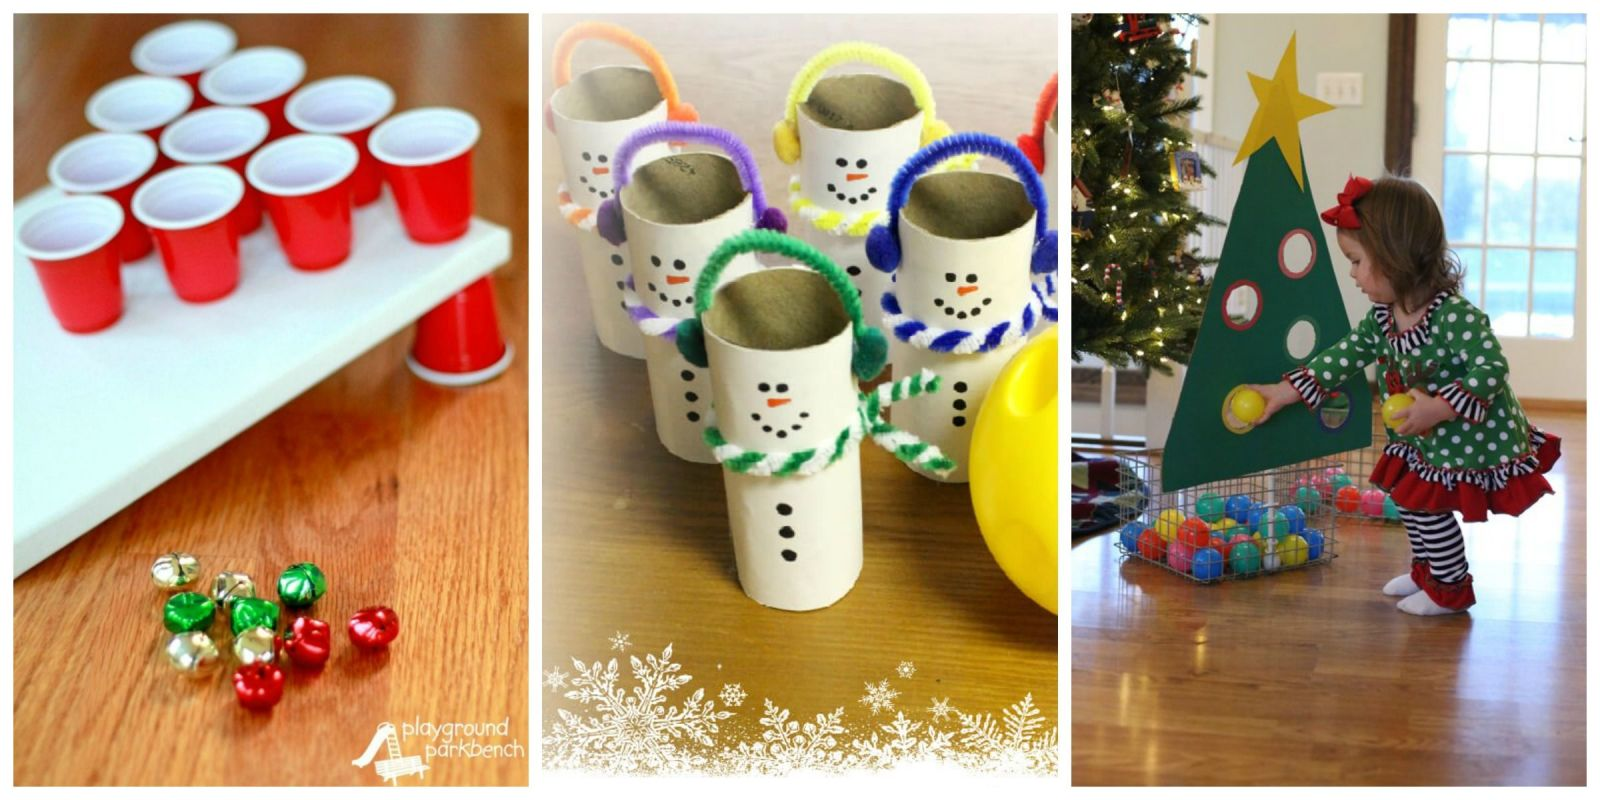 Gift Ideas For Kids For Christmas Part - 36: 22 Fun Christmas Games U0026 Activities For Kids - Holiday Kids Table Ideas